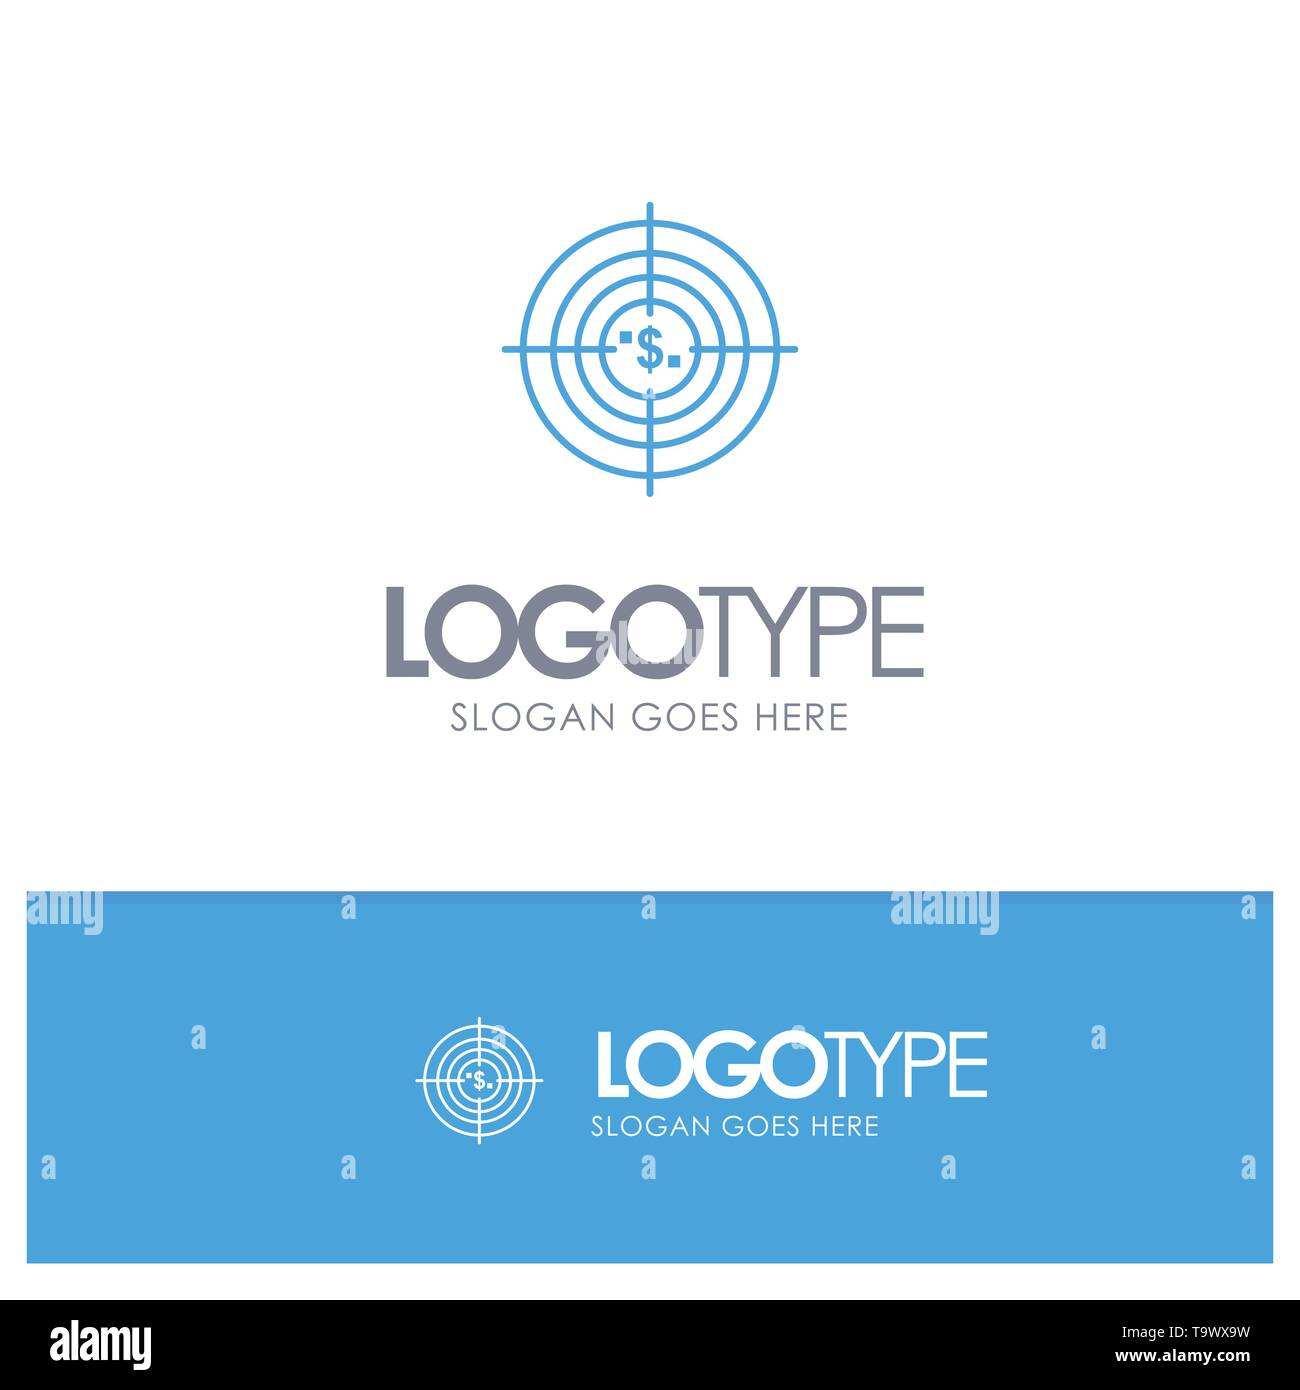 Target, Aim, Business, Cash, Financial, Funds, Hunting, Money Blue outLine Logo with place for tagline - Stock Image